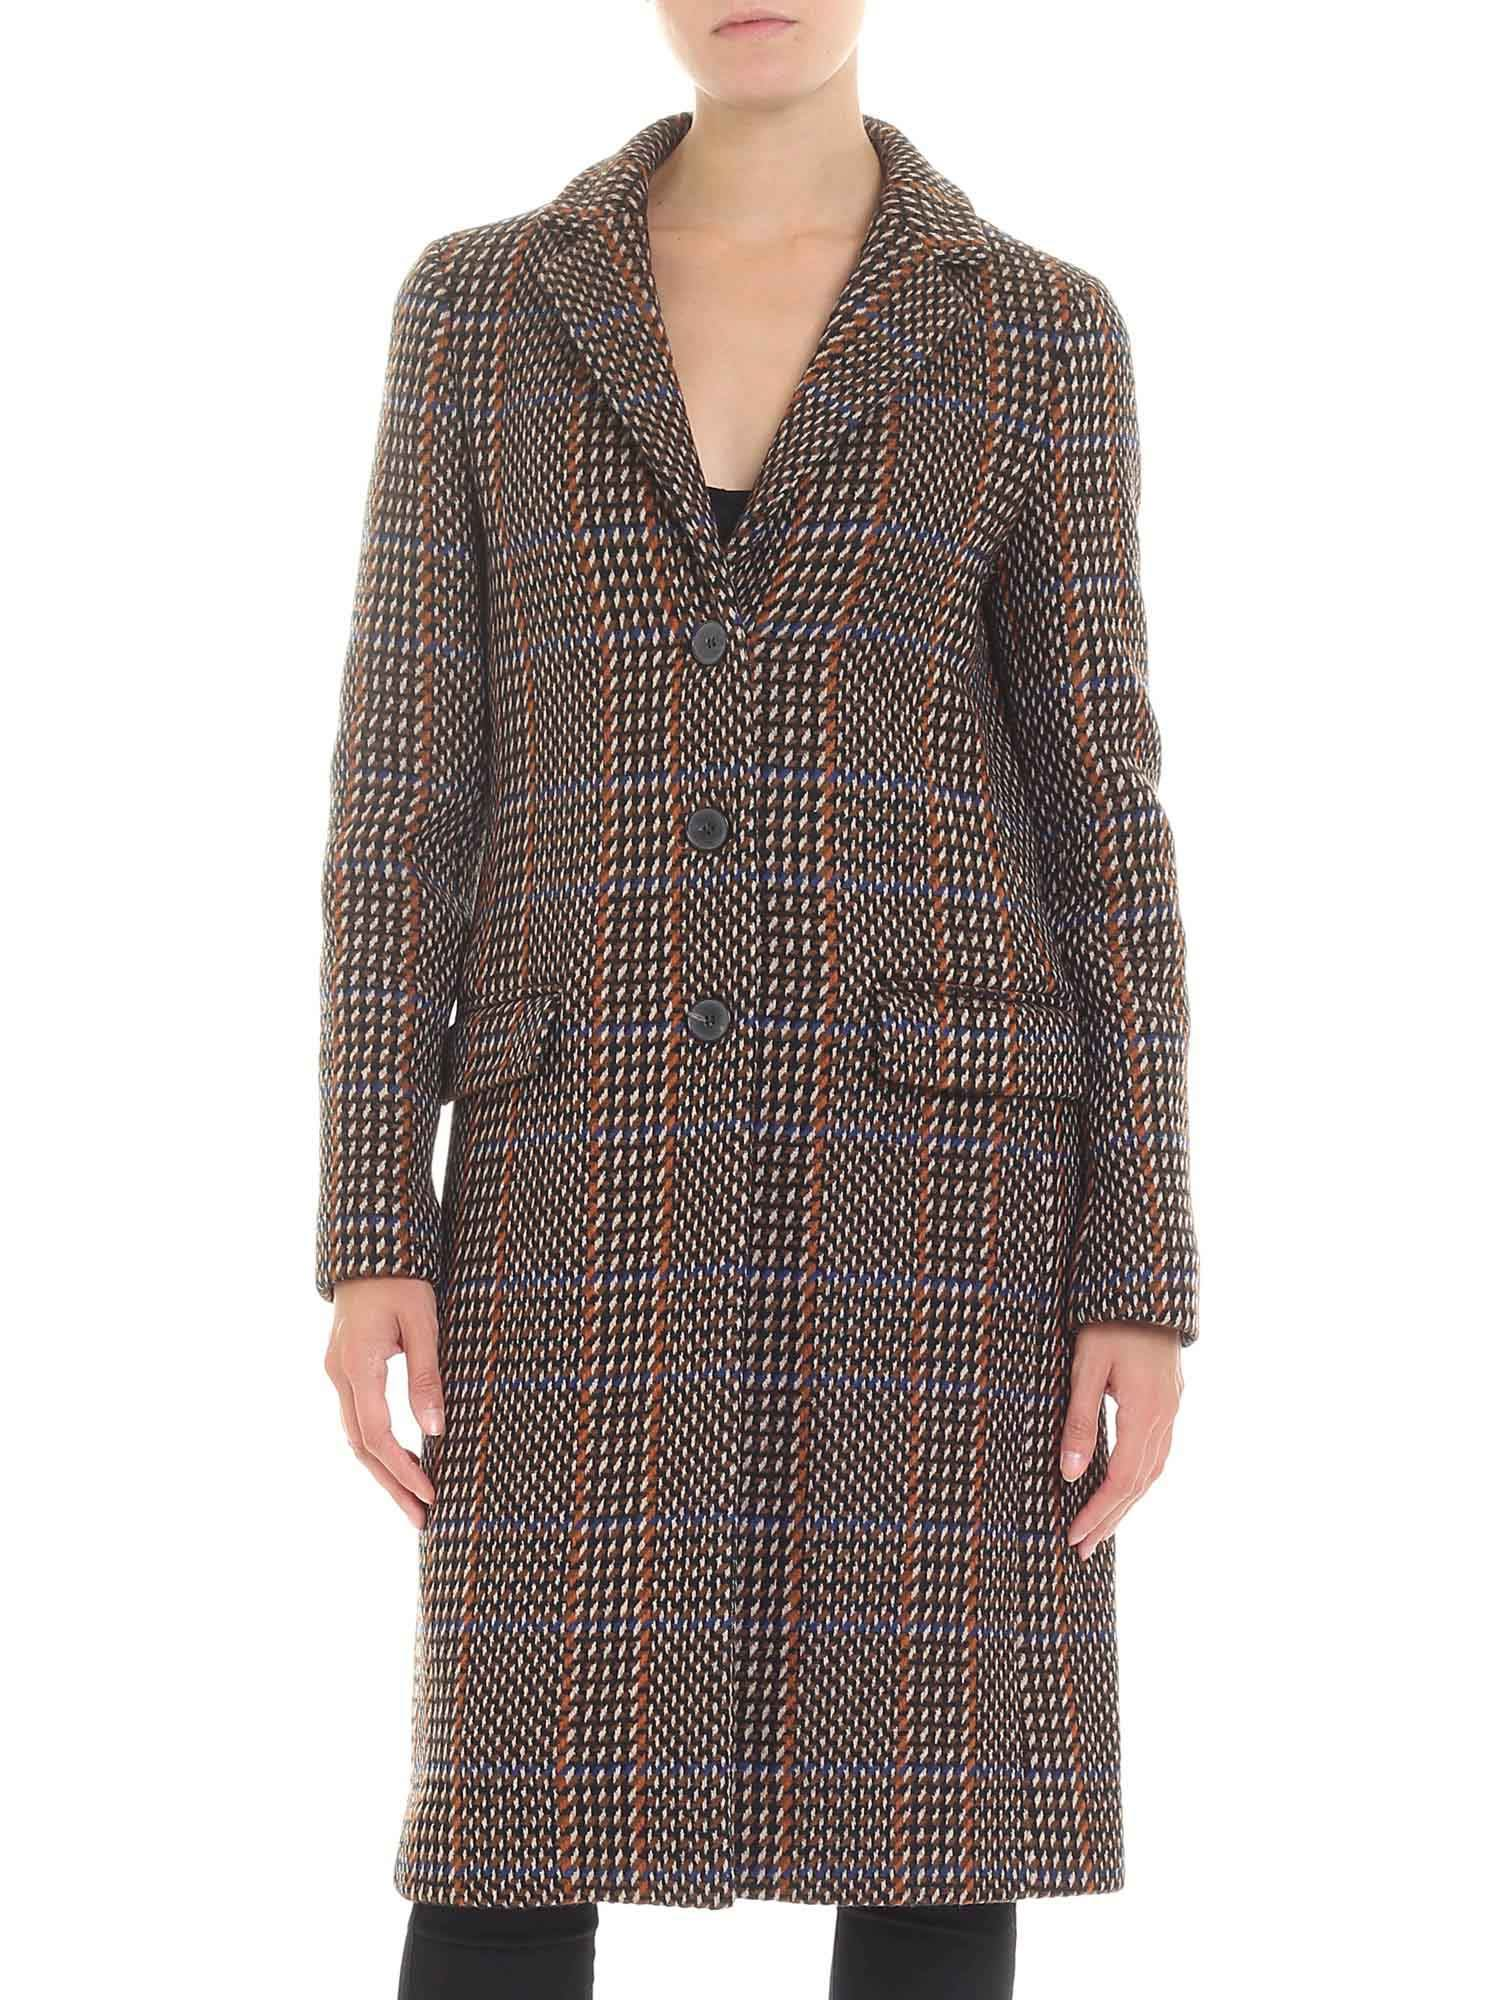 Etro Check Wool Coat